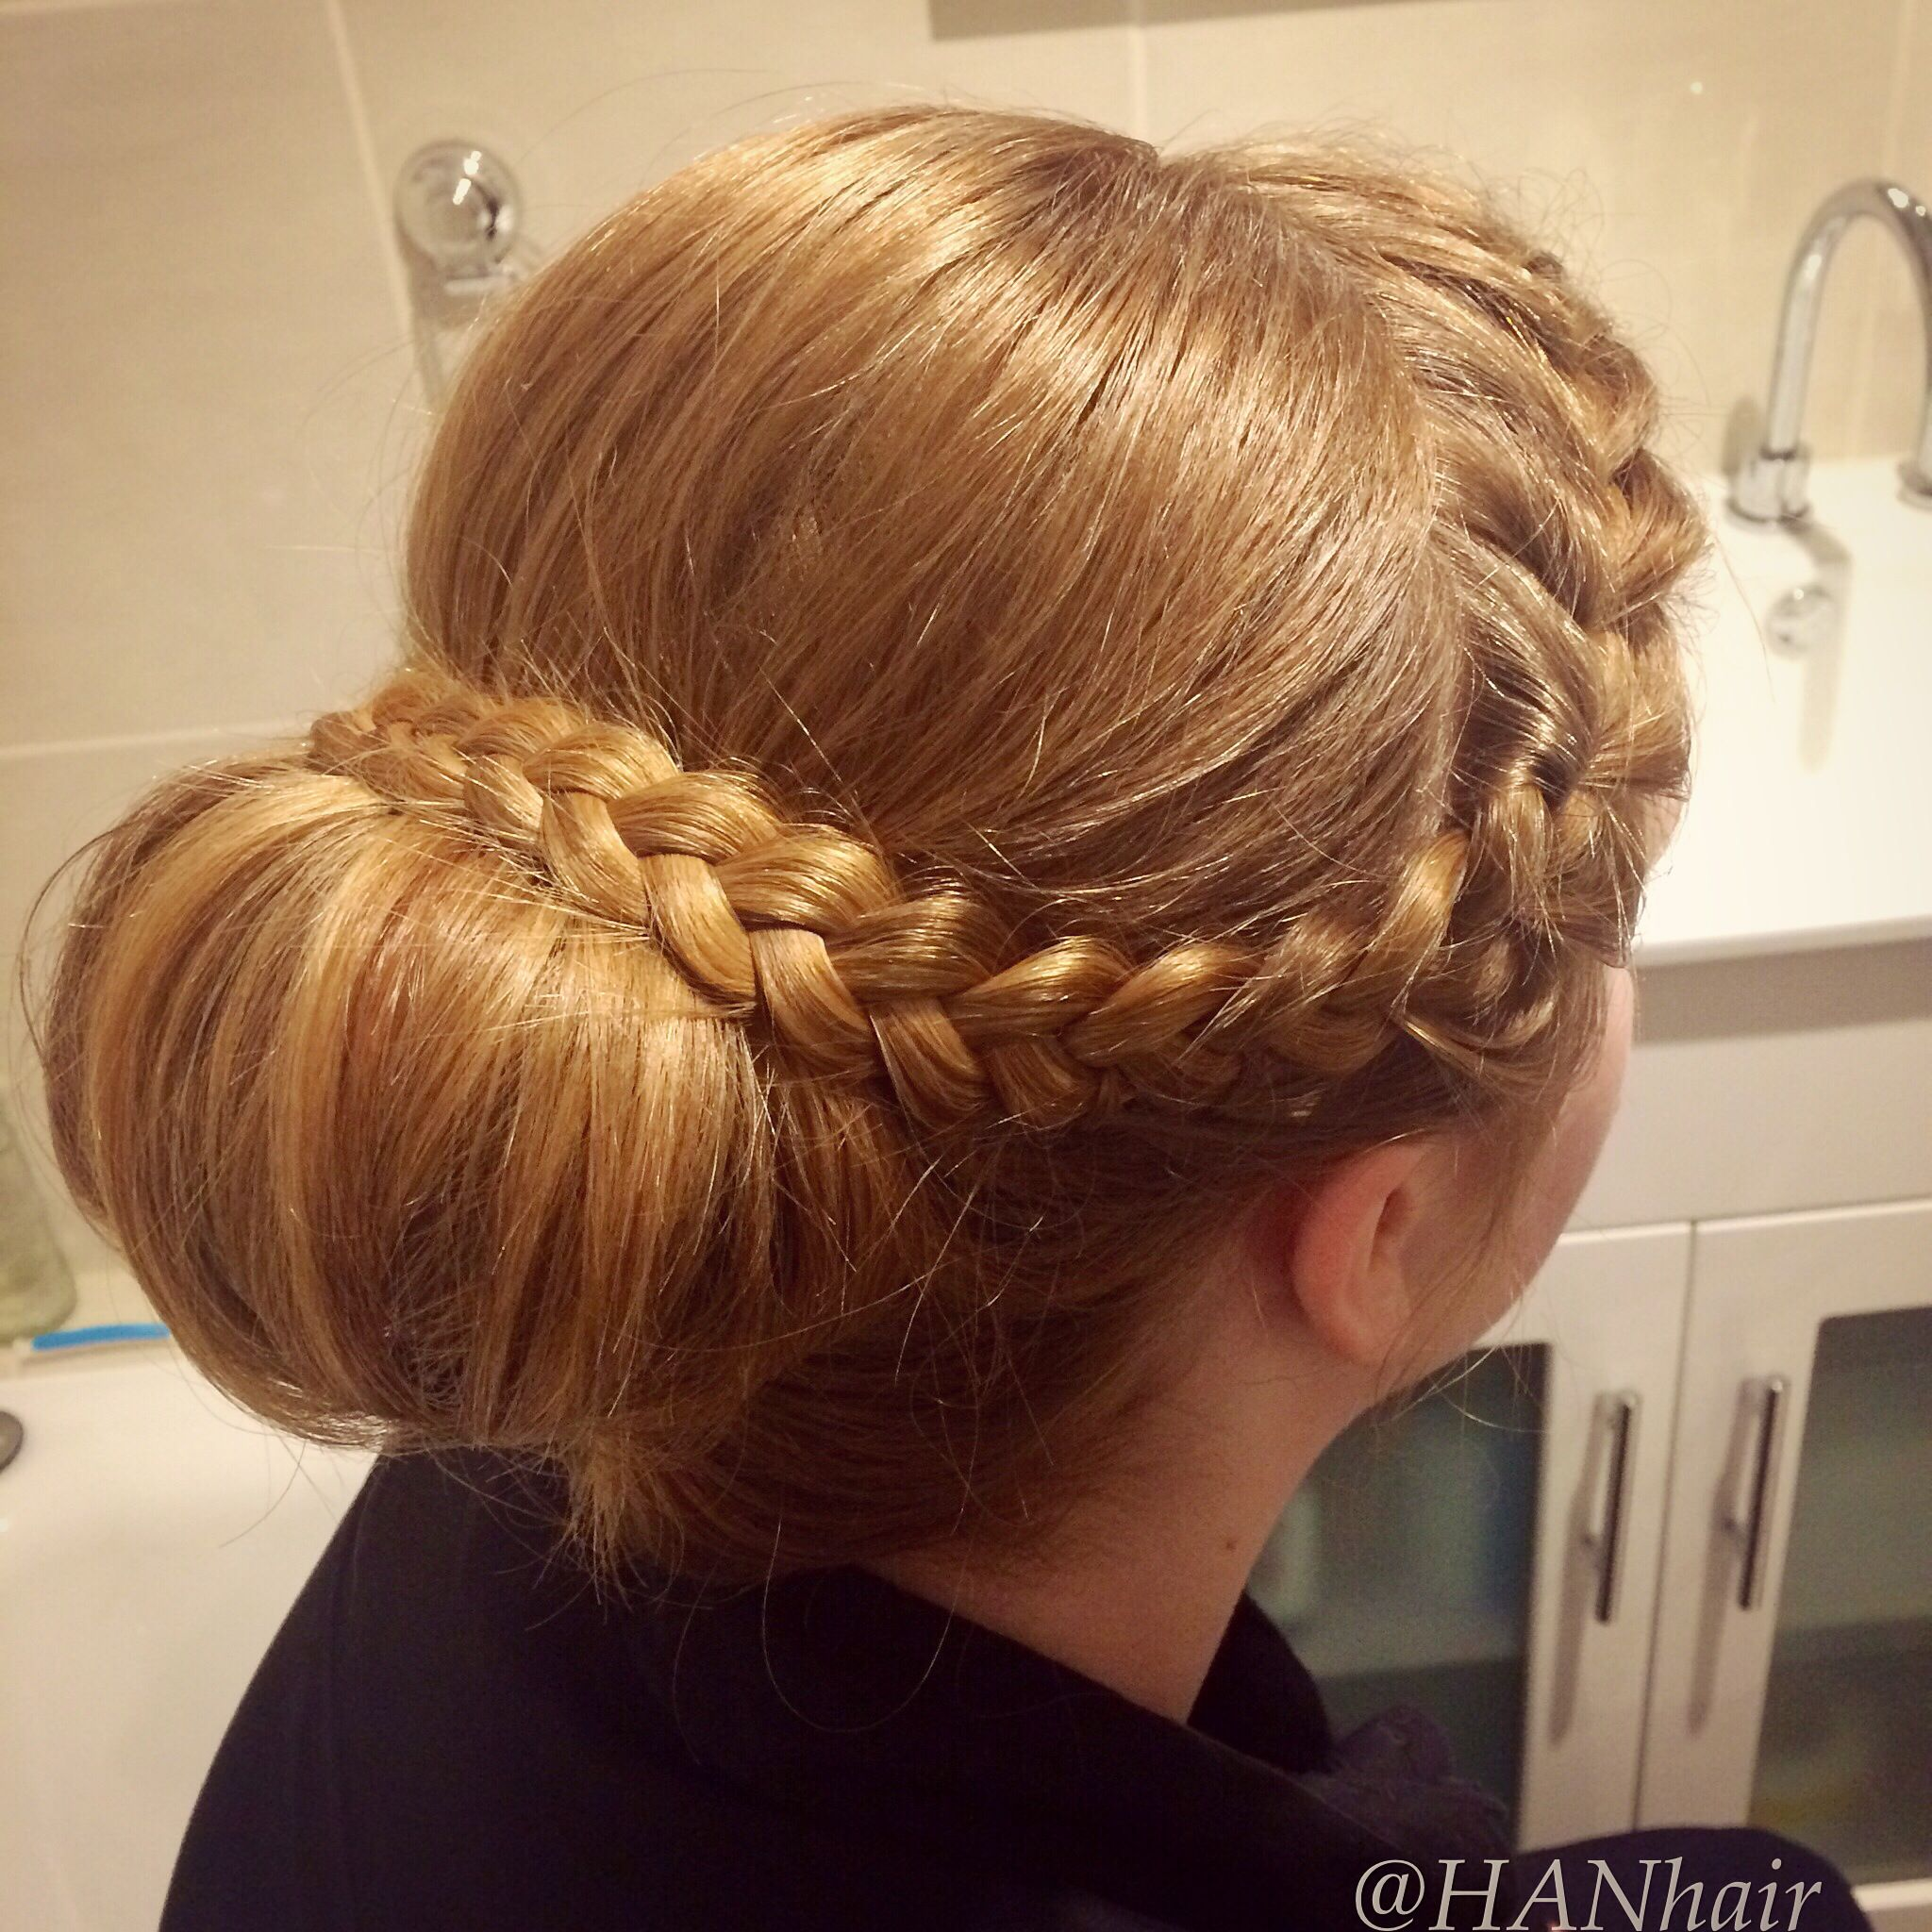 Hair for a year formal tonight formal pinterest